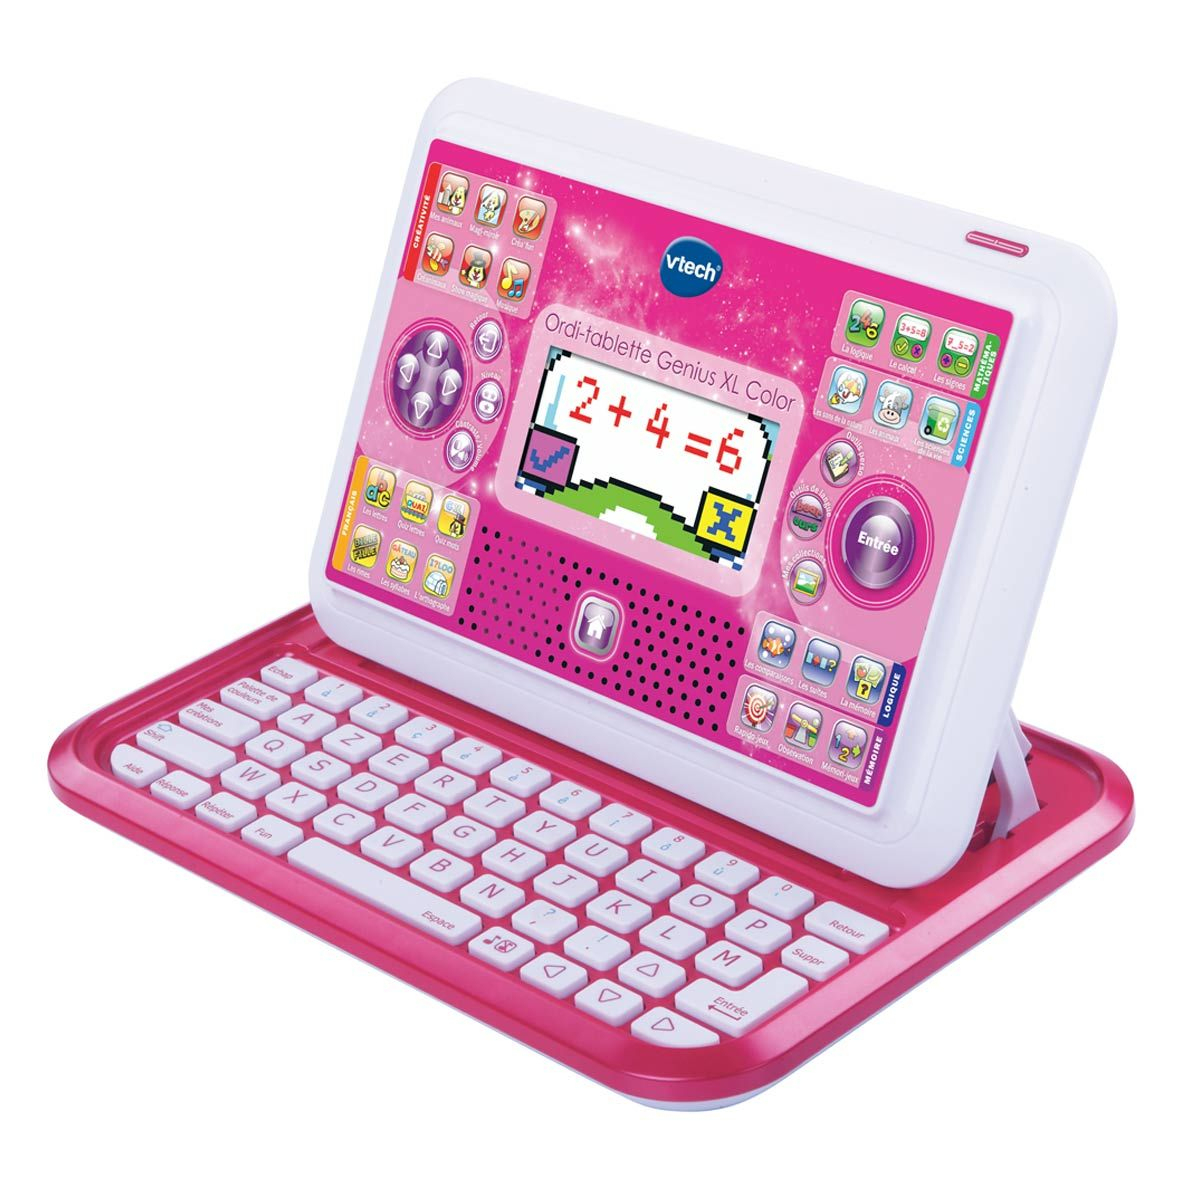 Ordi Tablette Genius Xl Rose Vtech | Ordi Tablette à Ordinateur 3 Ans